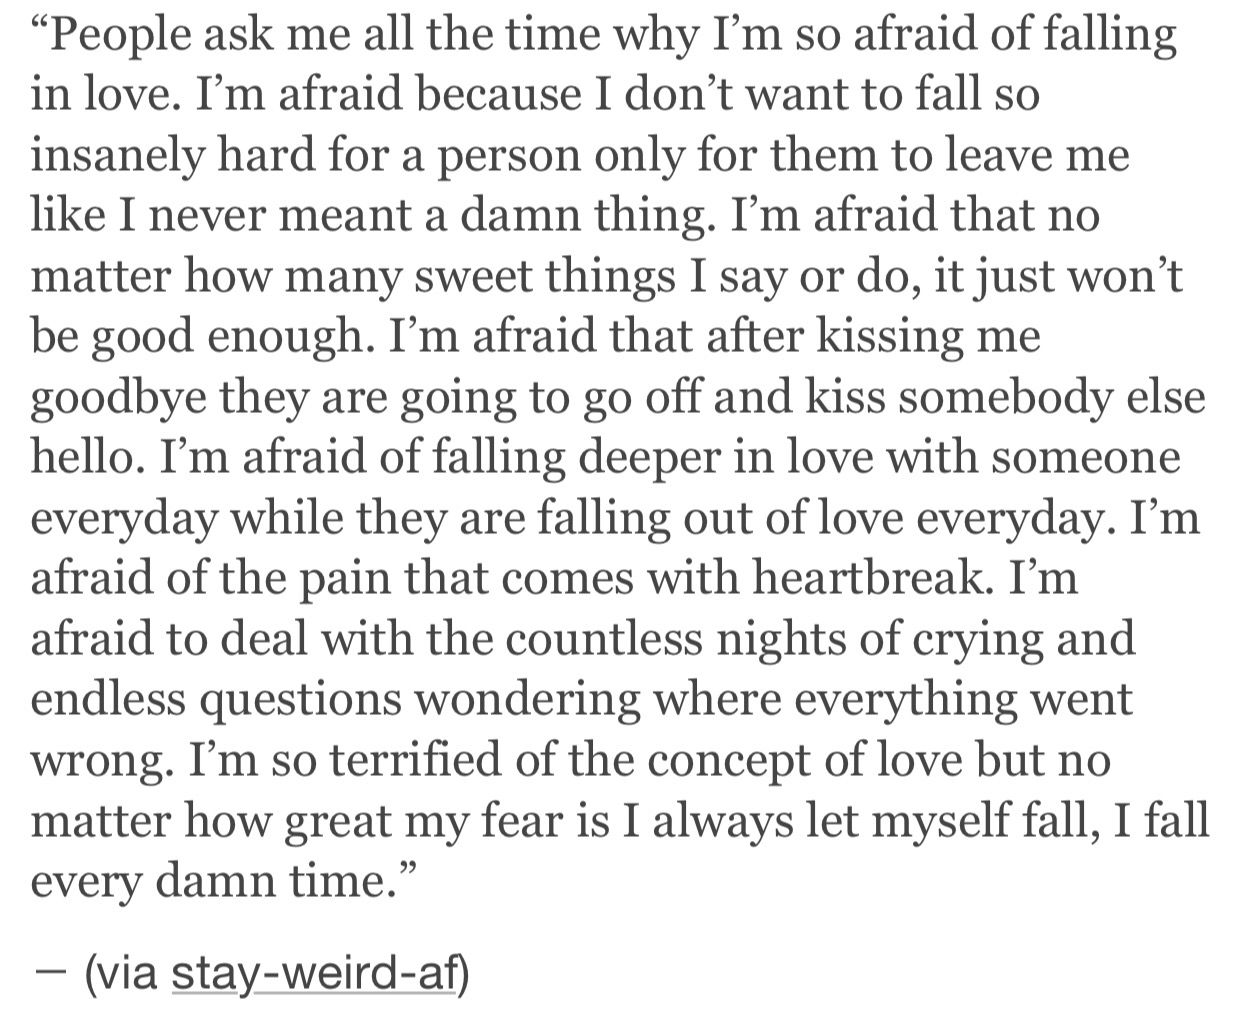 Why to fall in love